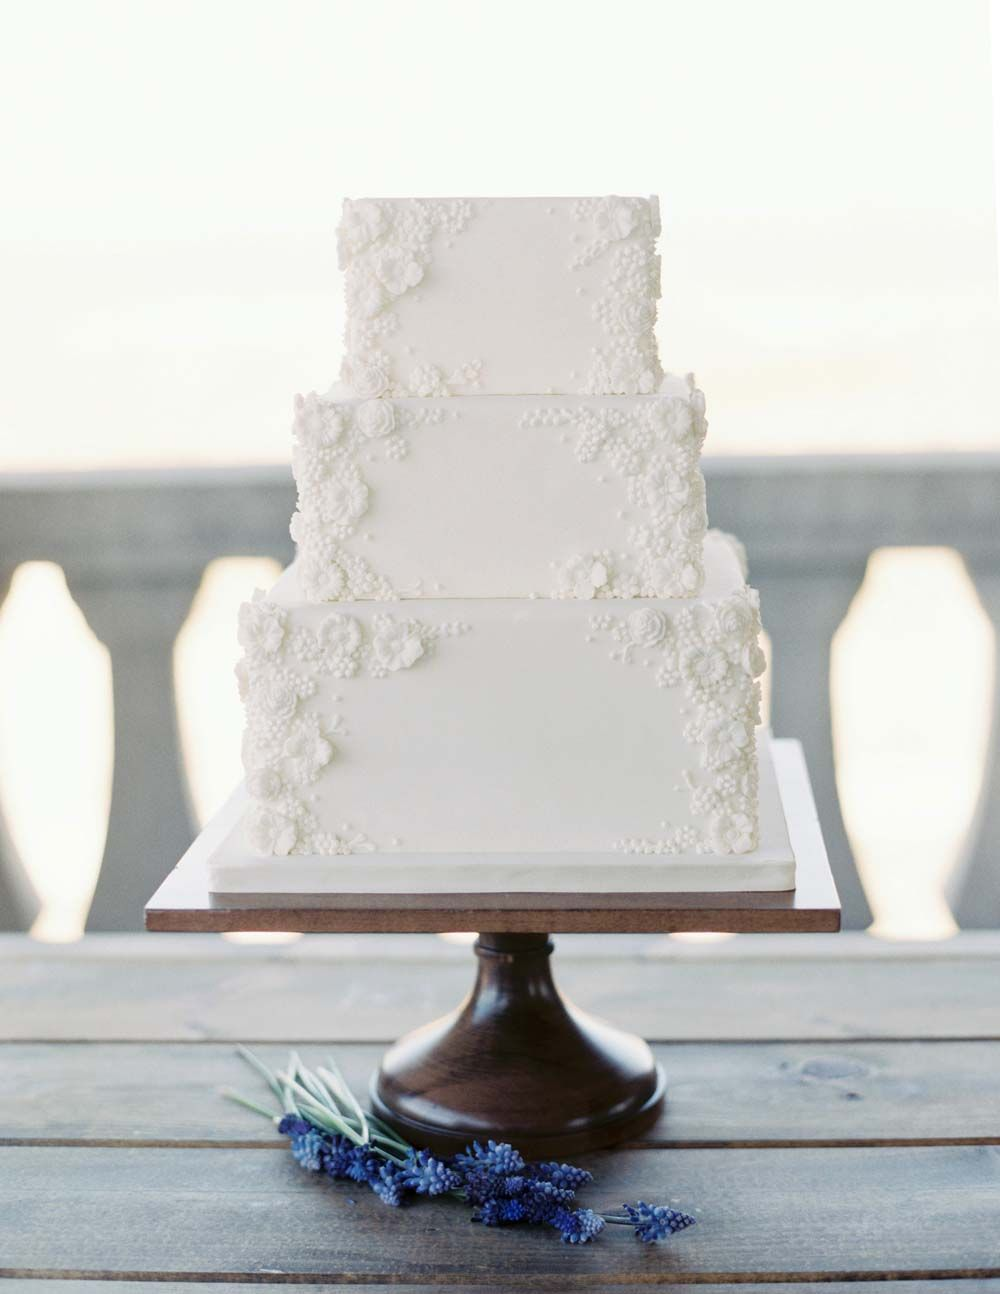 White square bas relief wedding cake amy beck cake design chicago